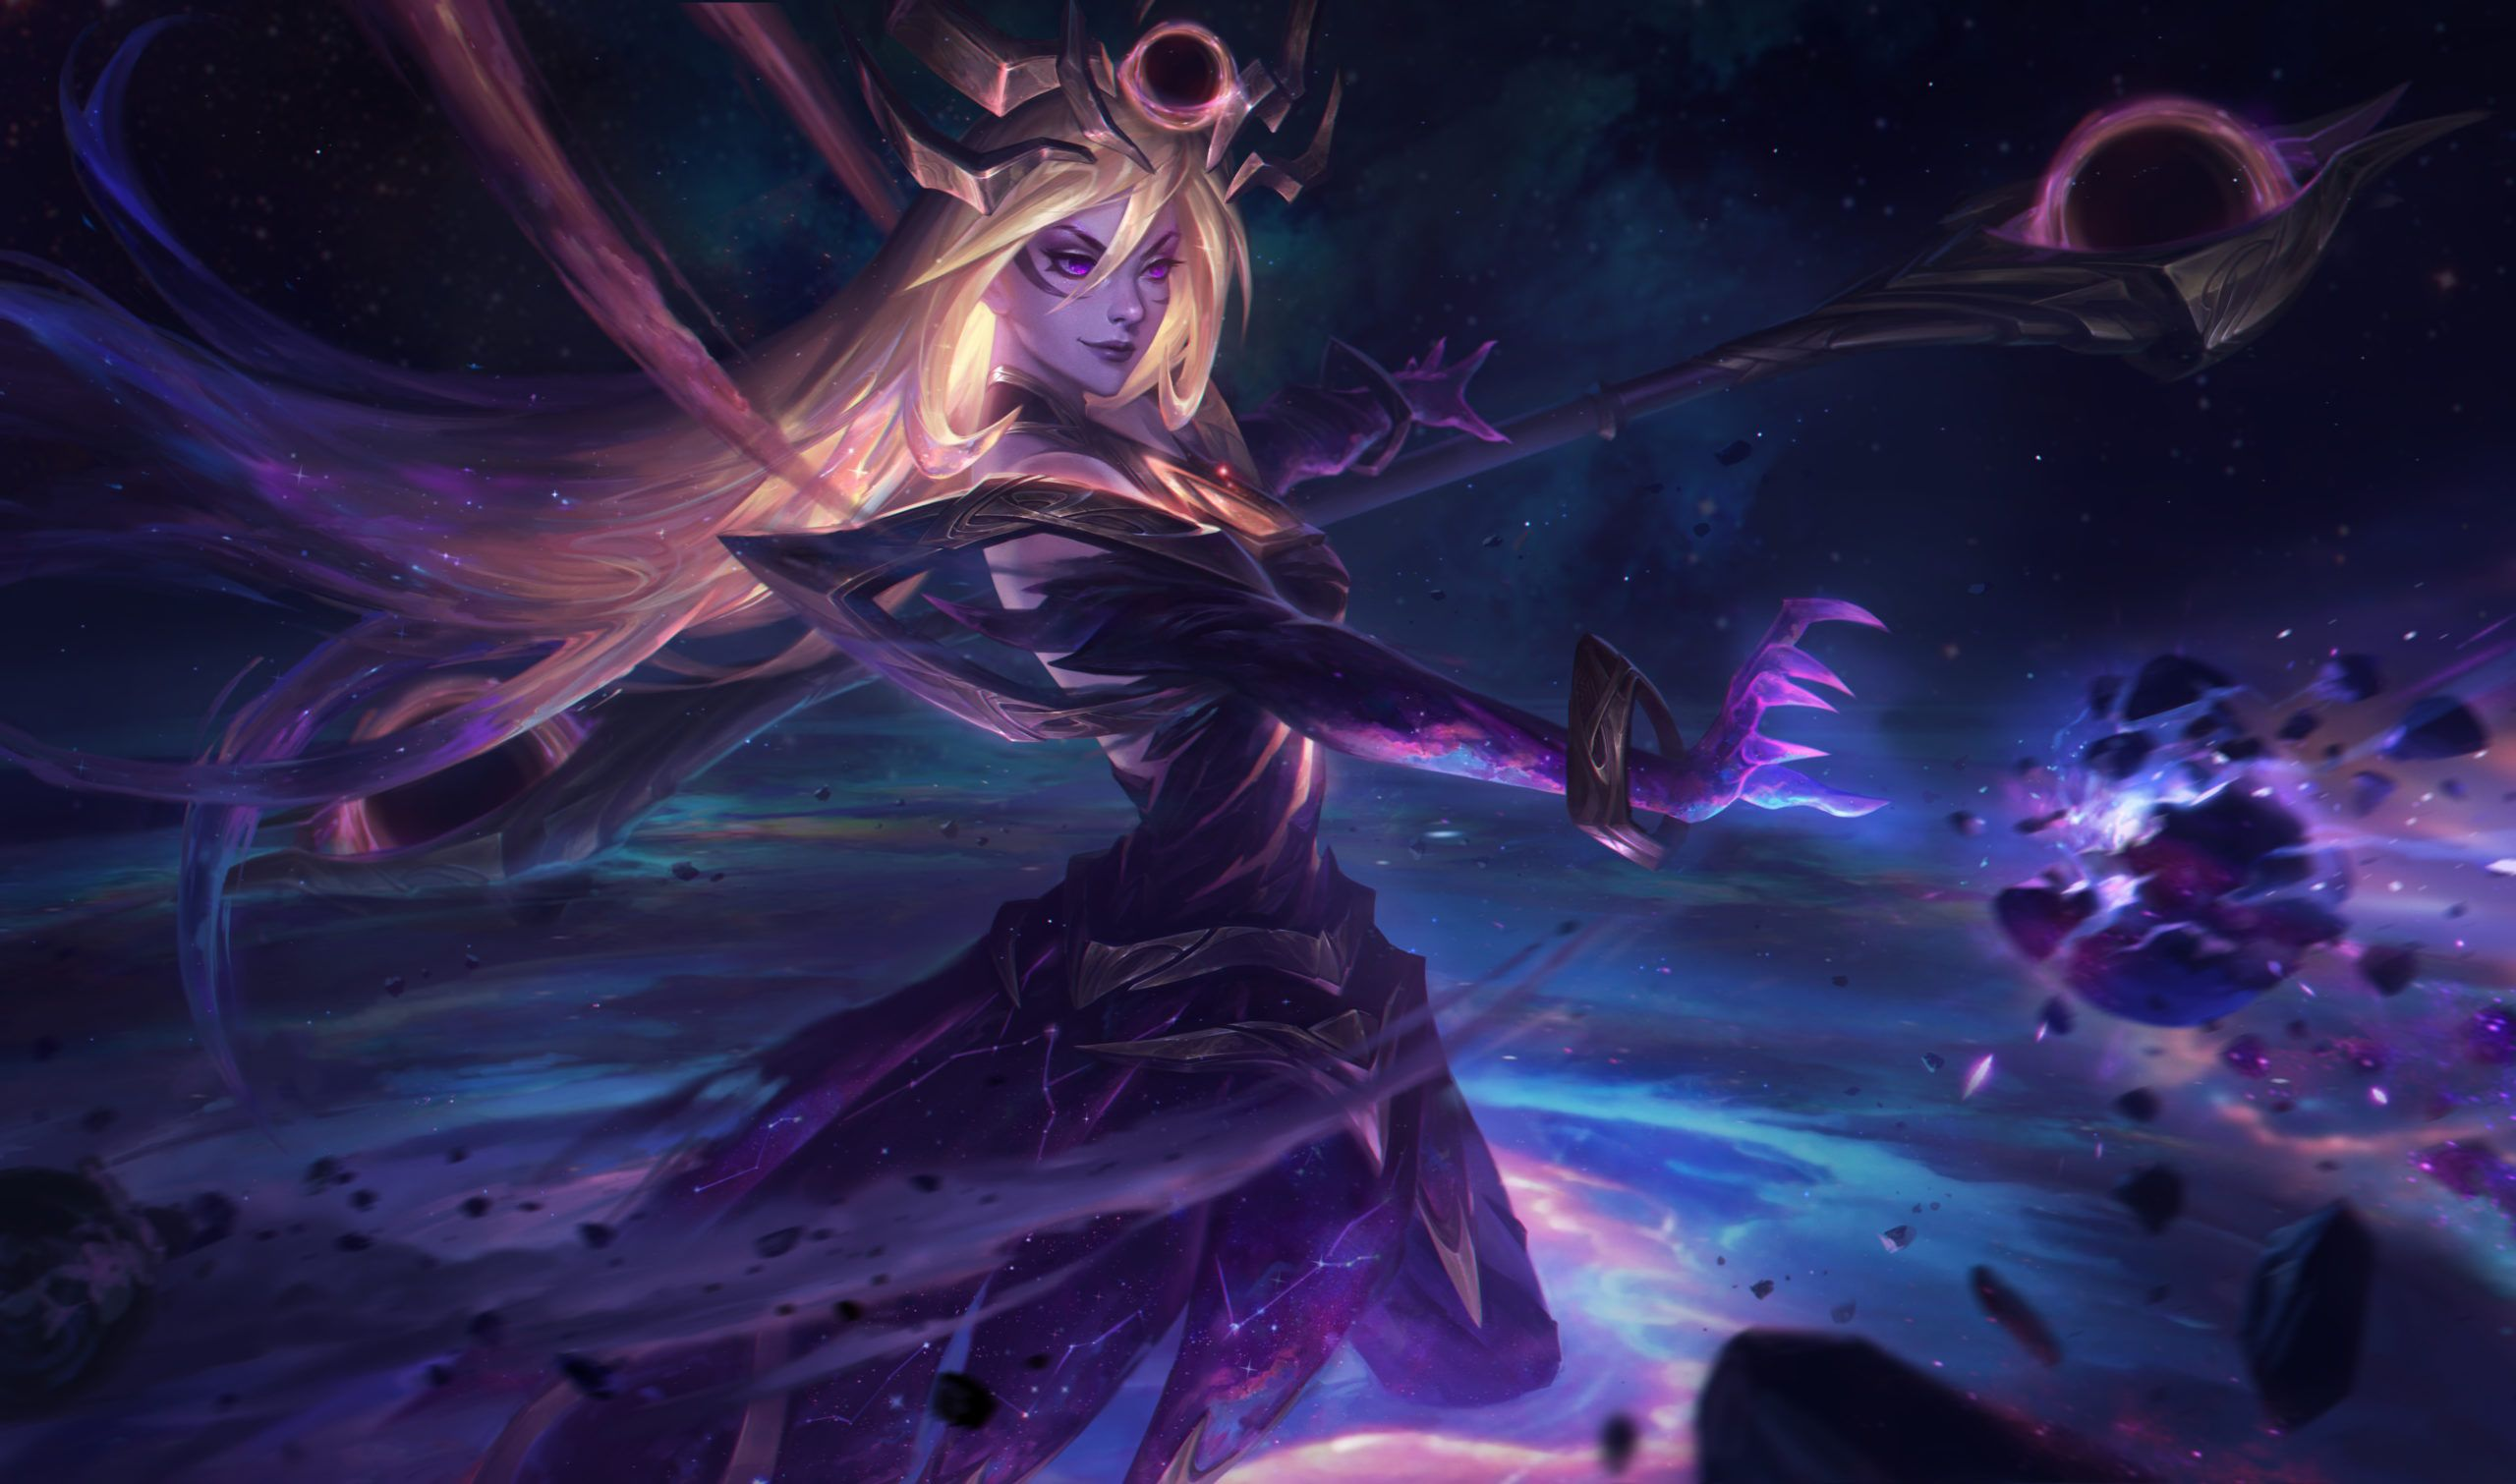 Wallpapers Cosmic And Dark Cosmic Lux Skins Artist Riot Games League Of Legends Waifu Clan Anime Pics Digital Art